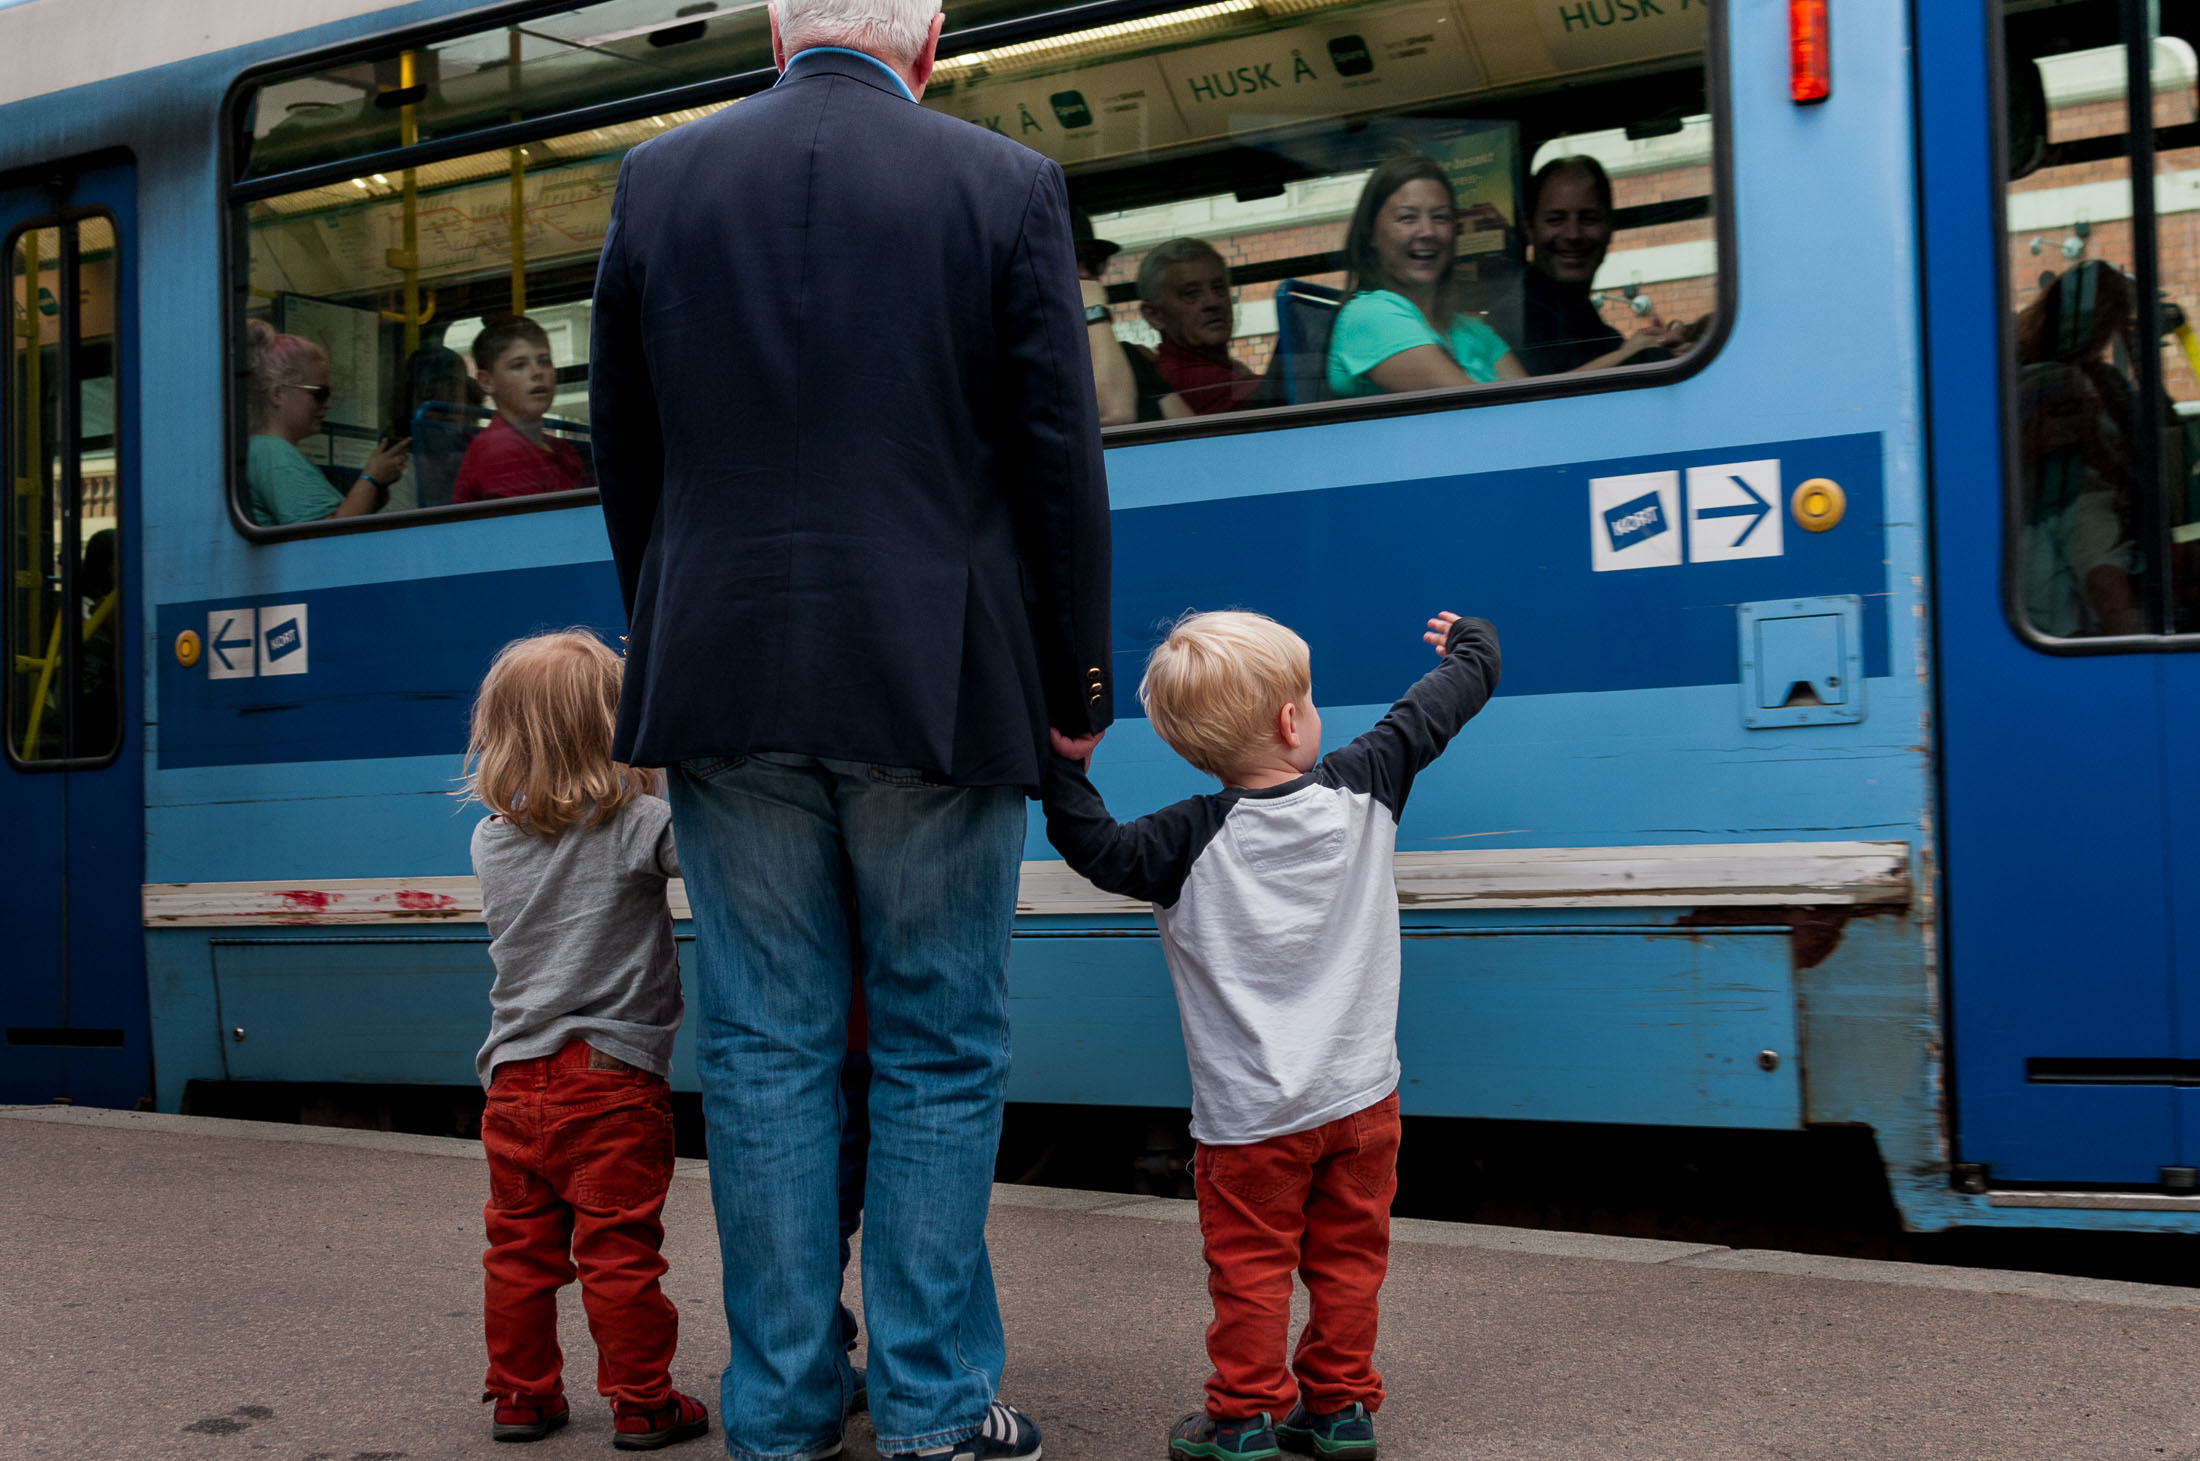 Twins wait with their grandfather as the tram passes in downtown Oslo.